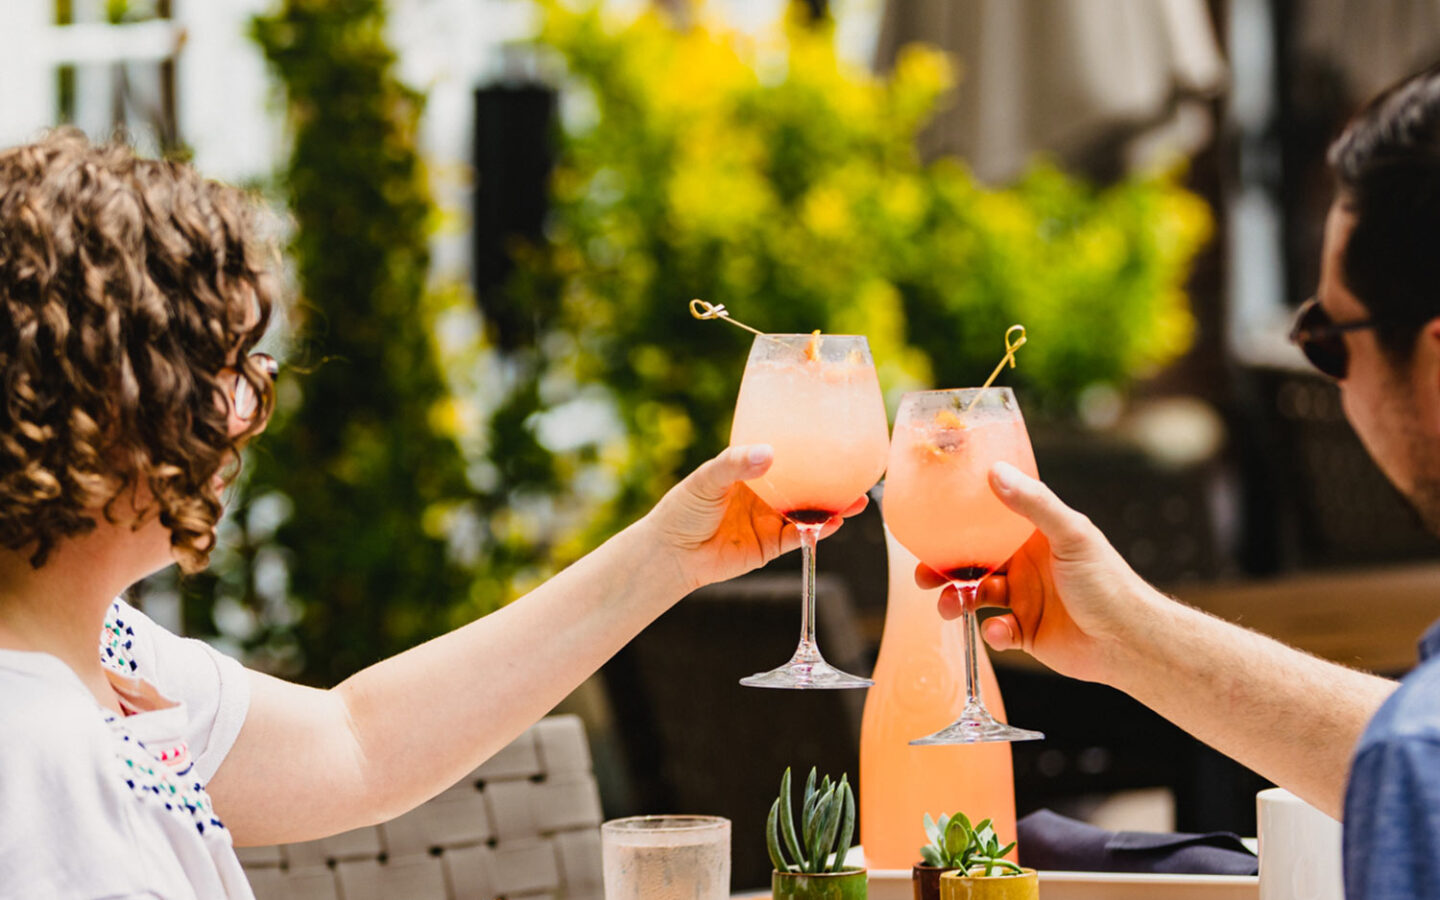 two people dining outdoors holding their cocktail glasses together